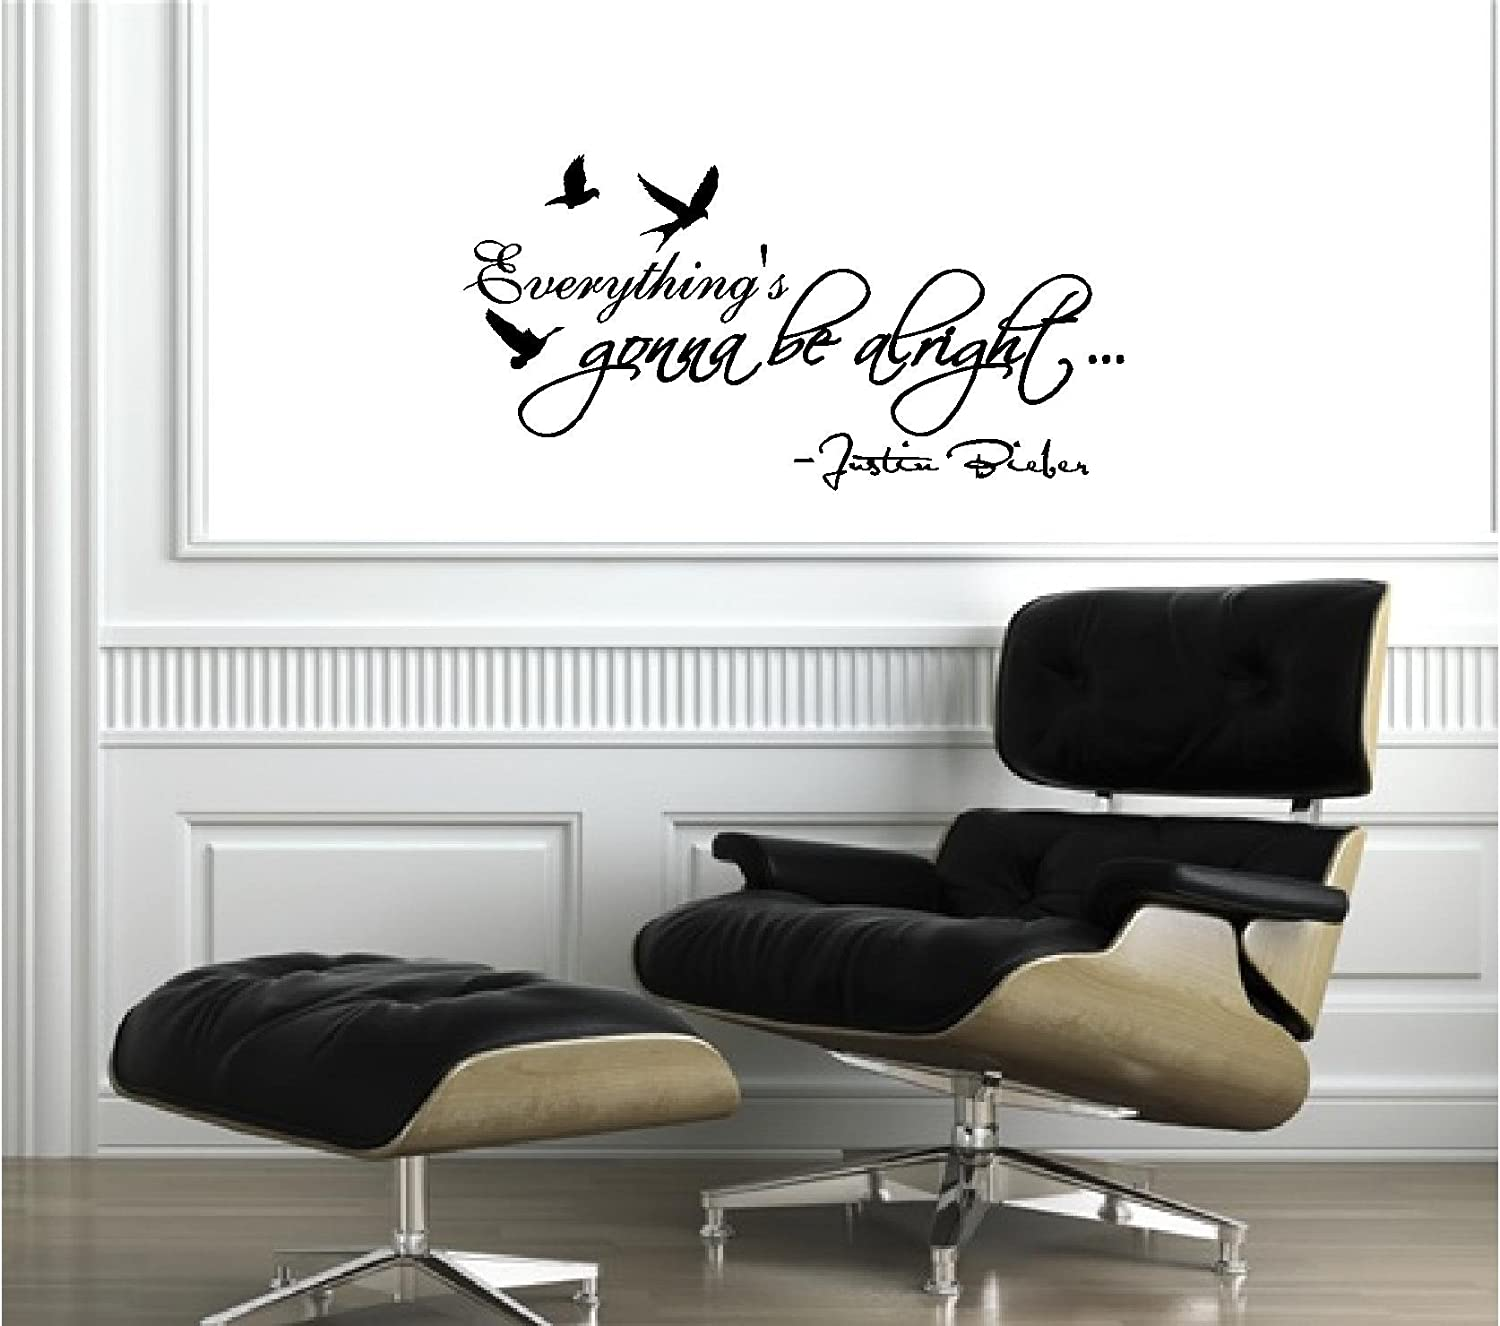 justin bieber everything s gonna be alright cute music wall art justin bieber everything s gonna be alright cute music wall art wall sayings quotes amazon in home kitchen